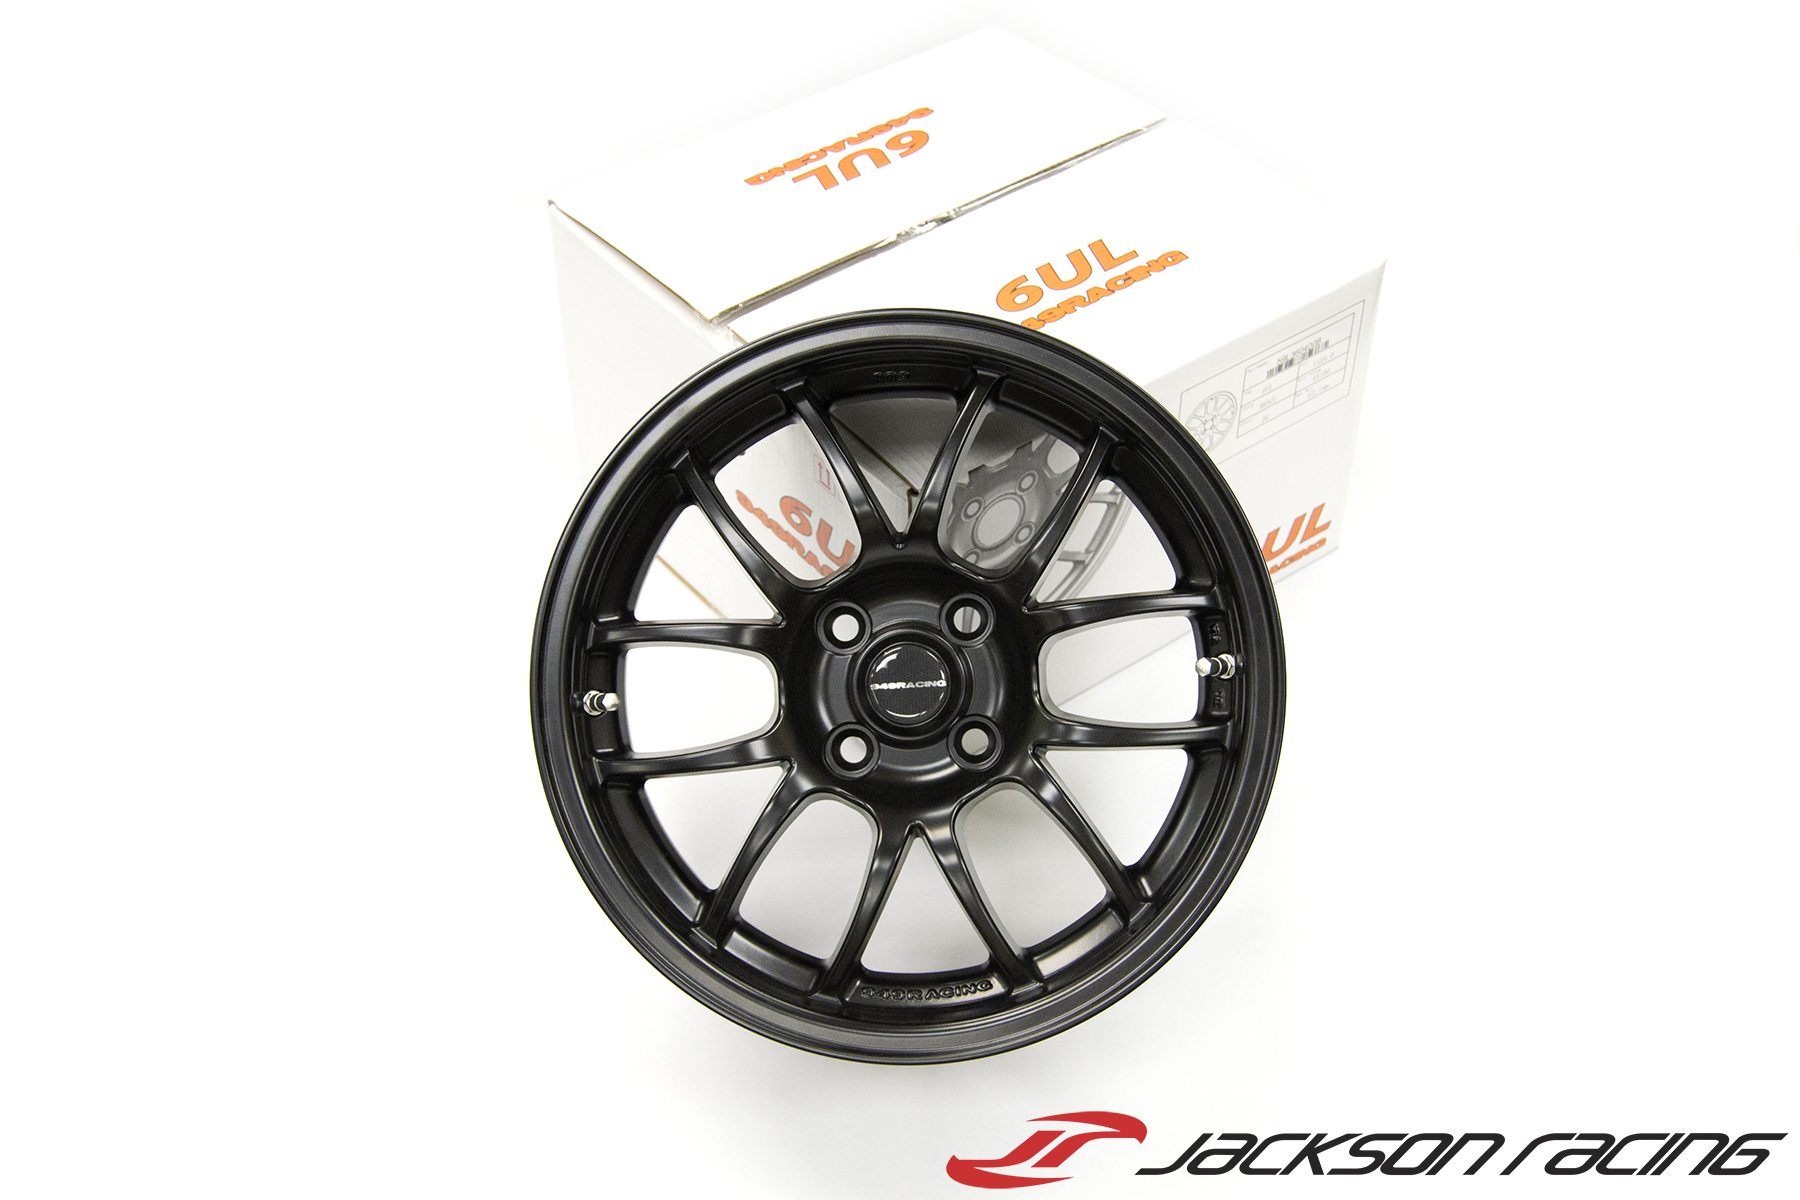 949 Racing 6UL - 15x7 +15 / 4x100 - Charcoal - Spec E30